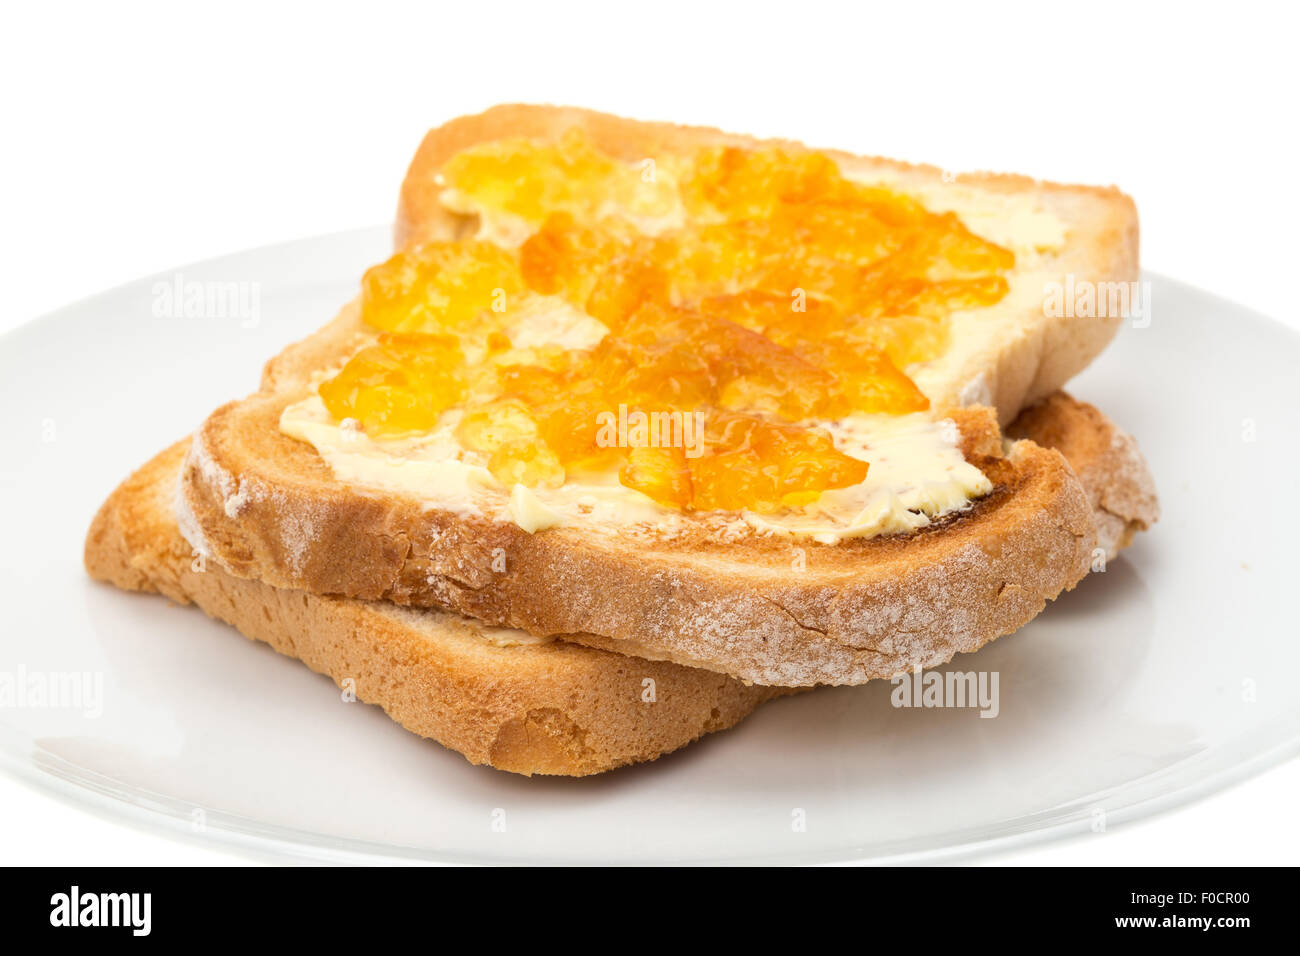 Orange marmalade on buttered toast - studio shot with a white background - Stock Image